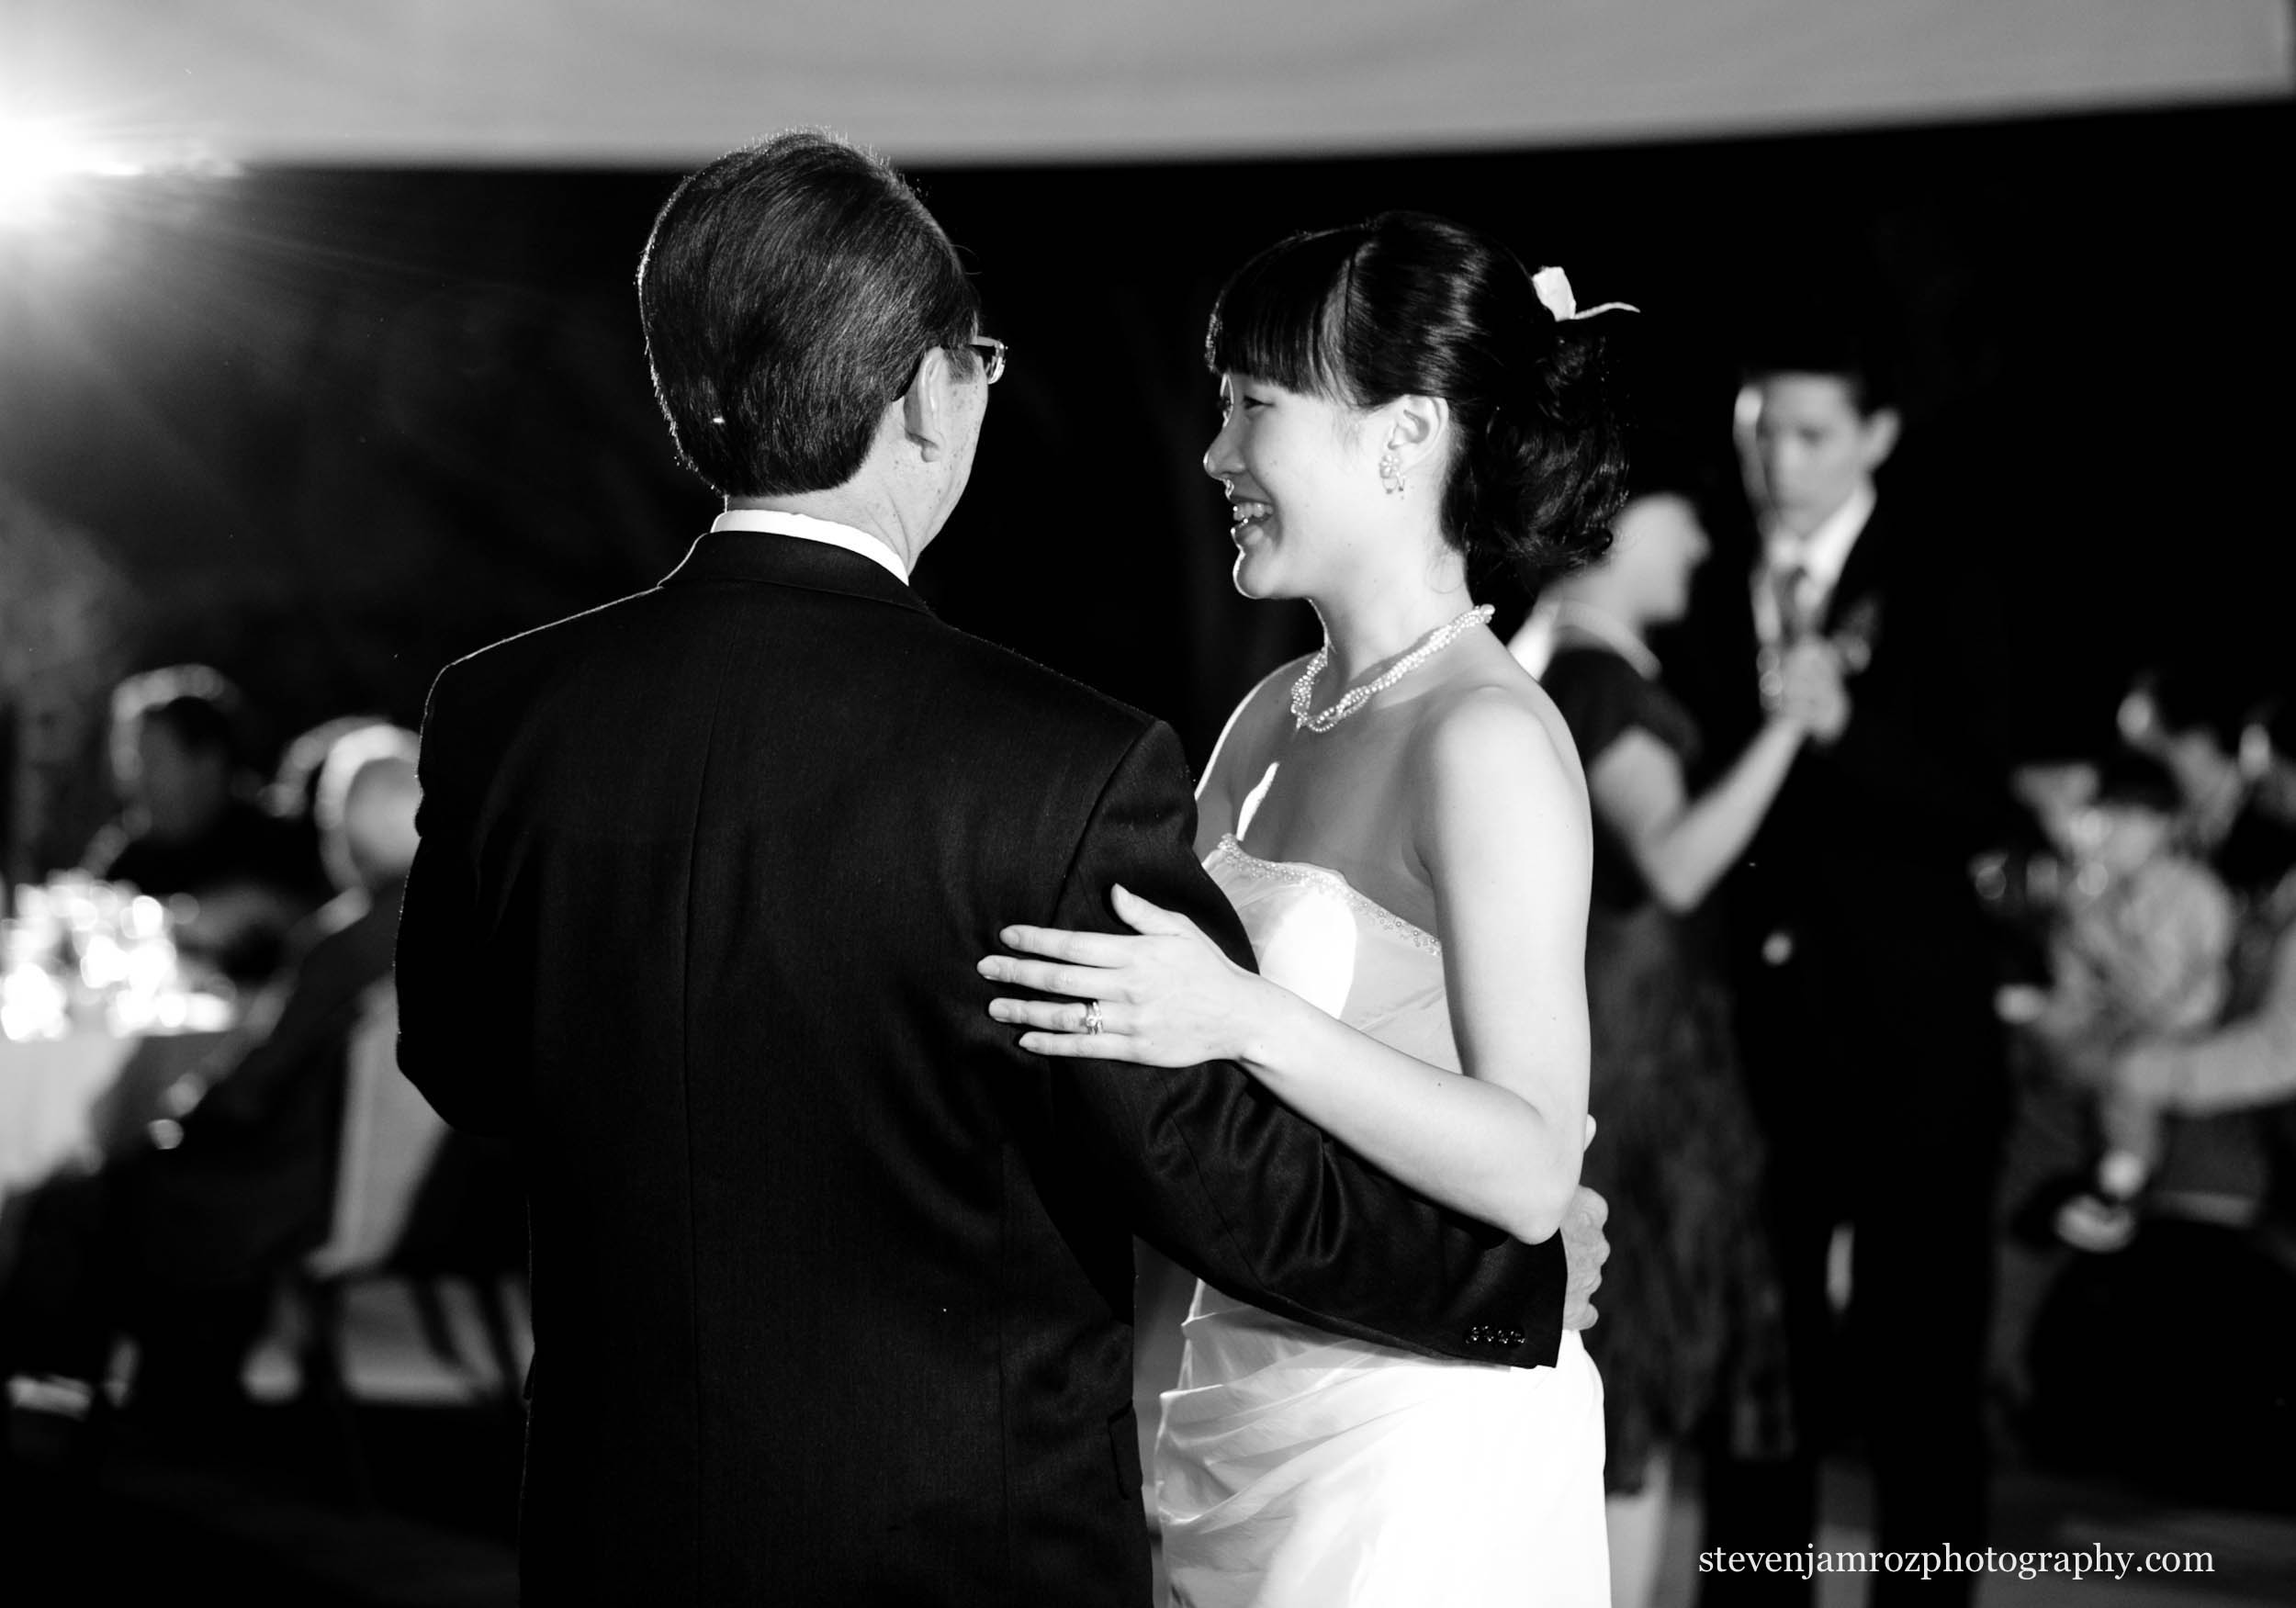 first-dance-with-dad-raleigh-wedding-steven-jamroz-photography-0070.jpg